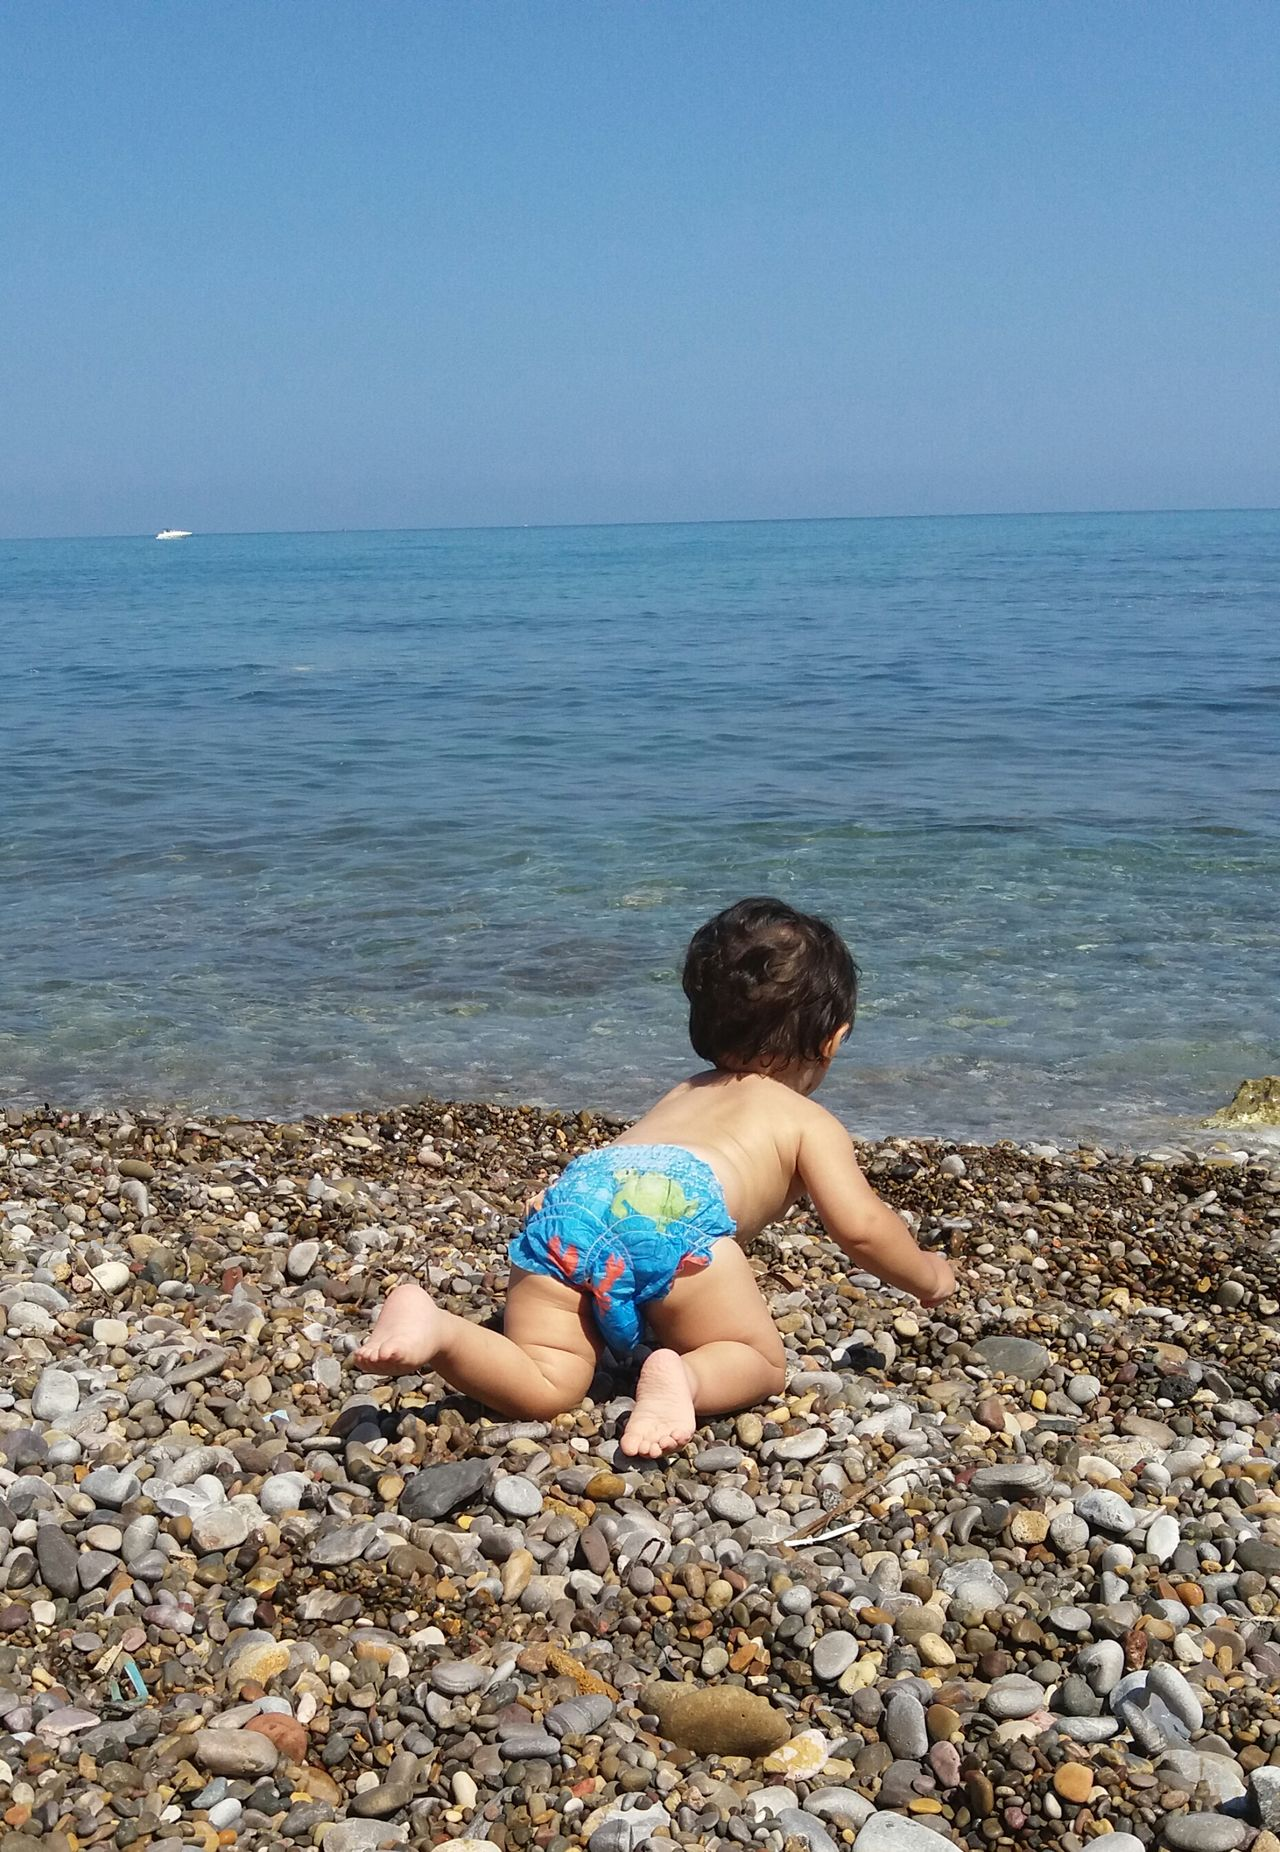 Spiaggia Sky Himmel Sea Relaxing Beach Strand Cielo Mare Sicily Italy No Filter Altavilla Milicia, Palermo Province, Sicily. Bambino Junge Kind Child Play Sassini Steine Baby Summer Estate In Motion